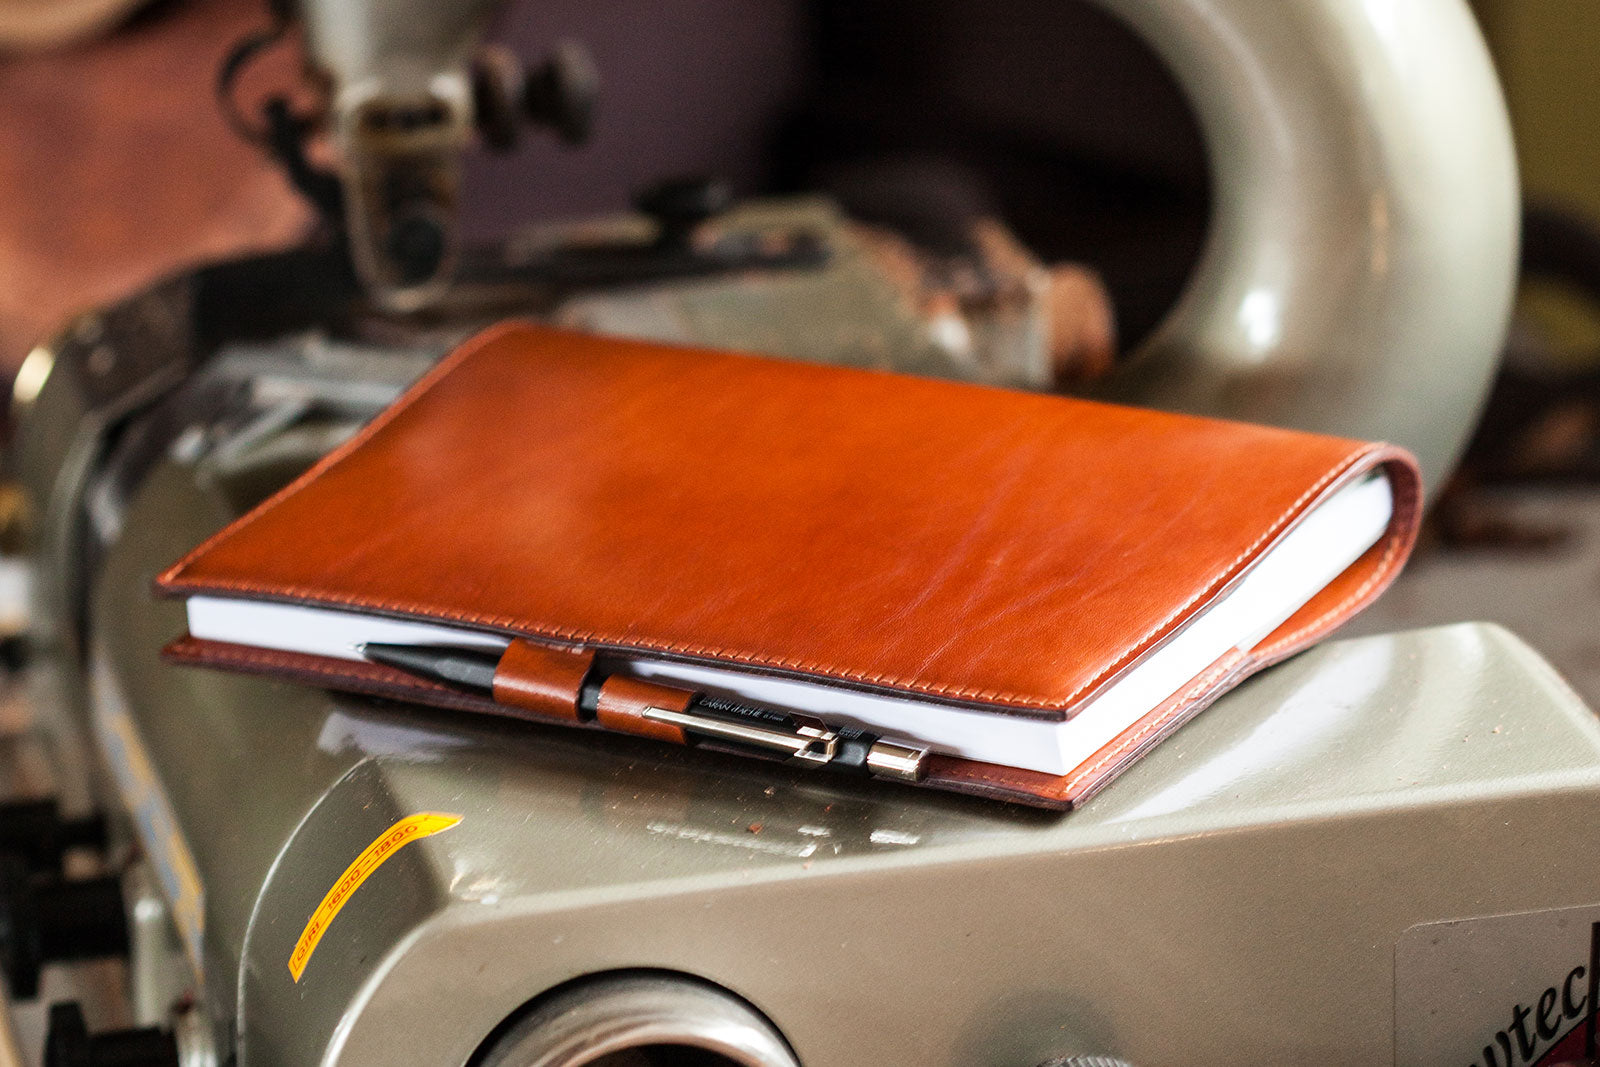 Oak Bark Tanned Leather PenLoop Notebook from Tanner Bates